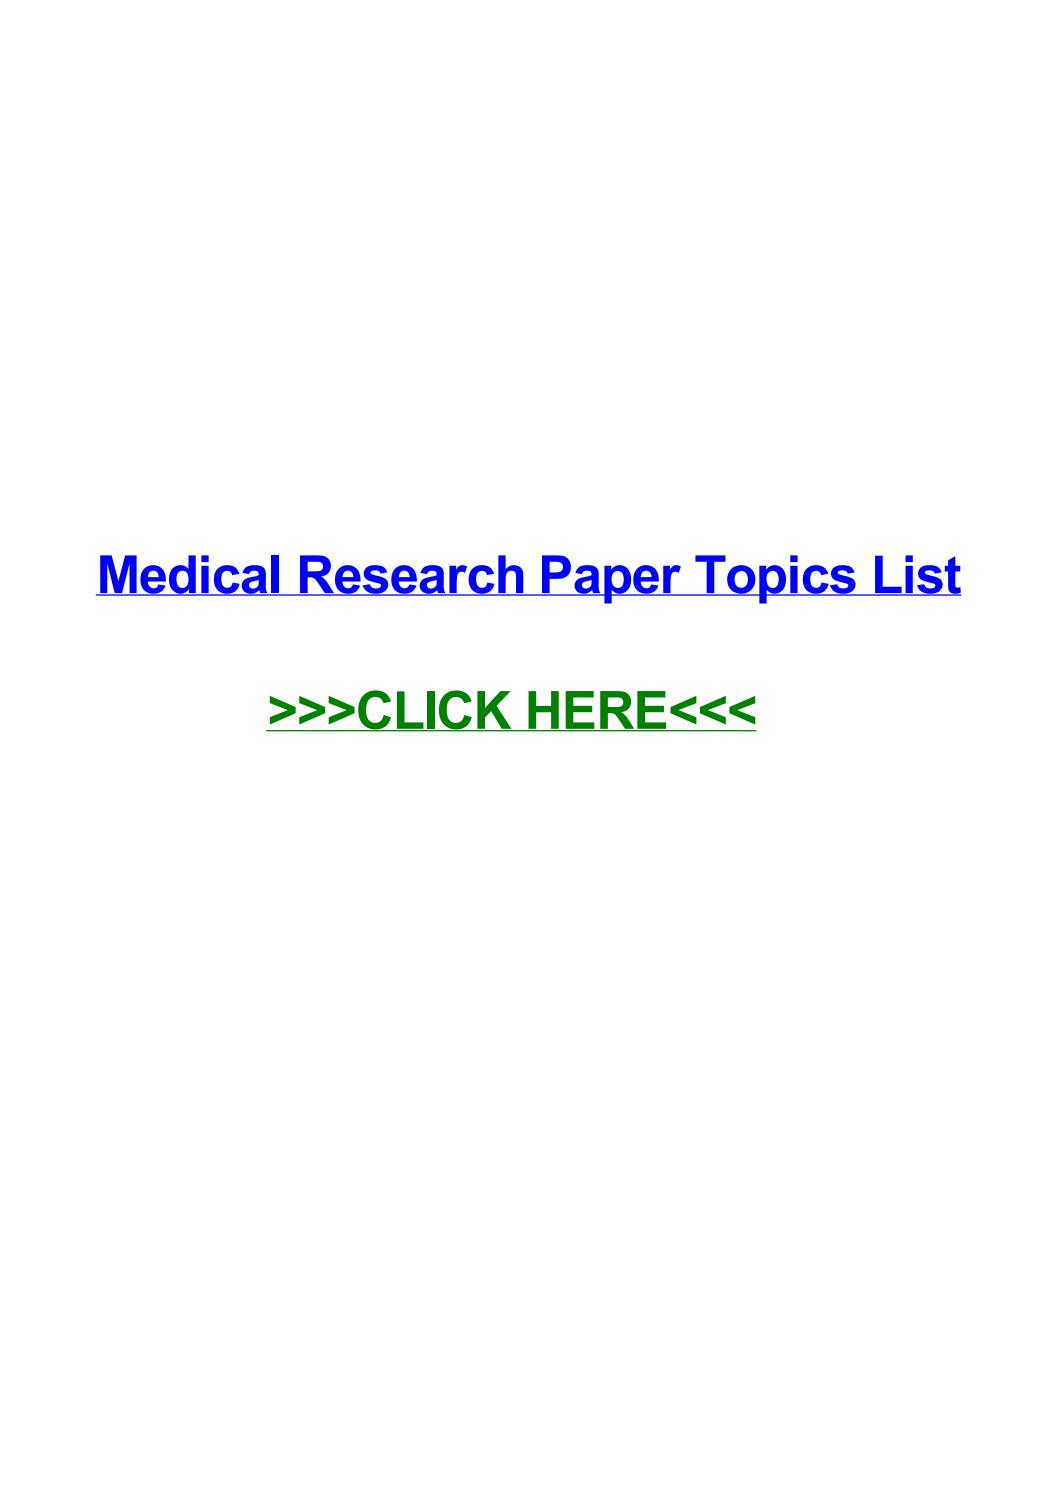 015 Research Paper Medical Topics Page 1 Stupendous For High School Students College